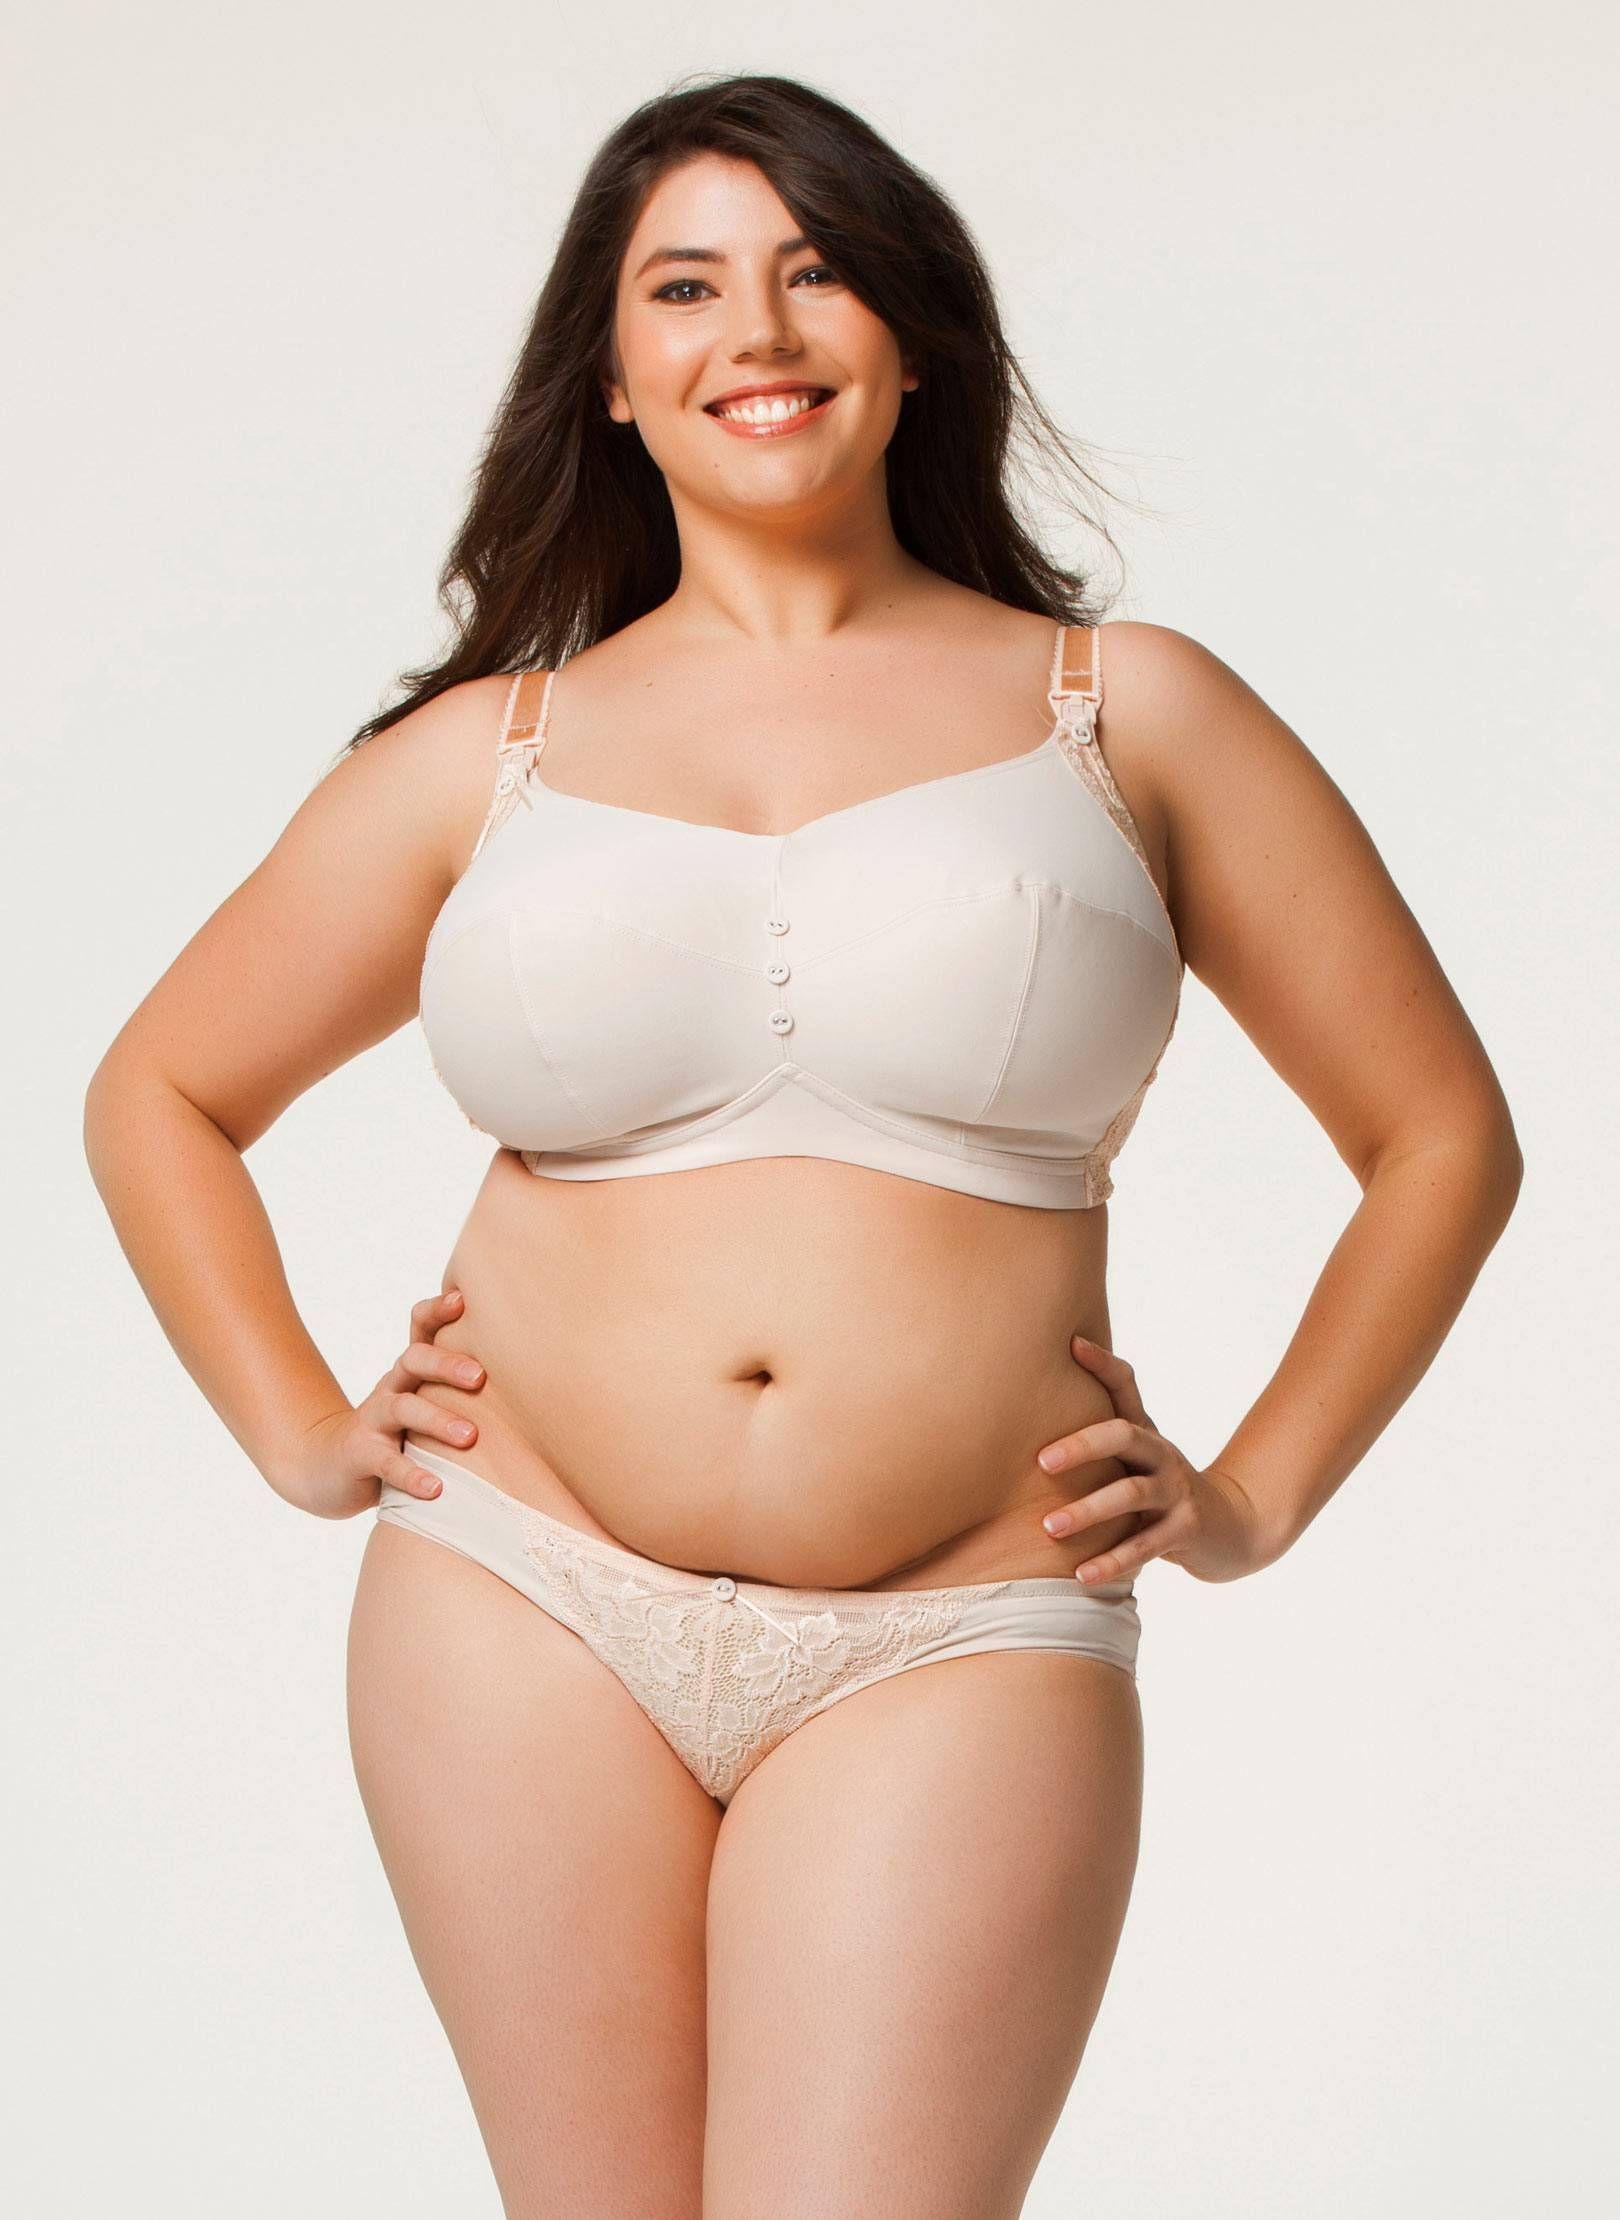 Shop Pink Basis' plus size intimates. From plus size lingerie to plus size corsets we have cheap intimates that won't break the bank. JavaScript seems to be disabled in your browser.